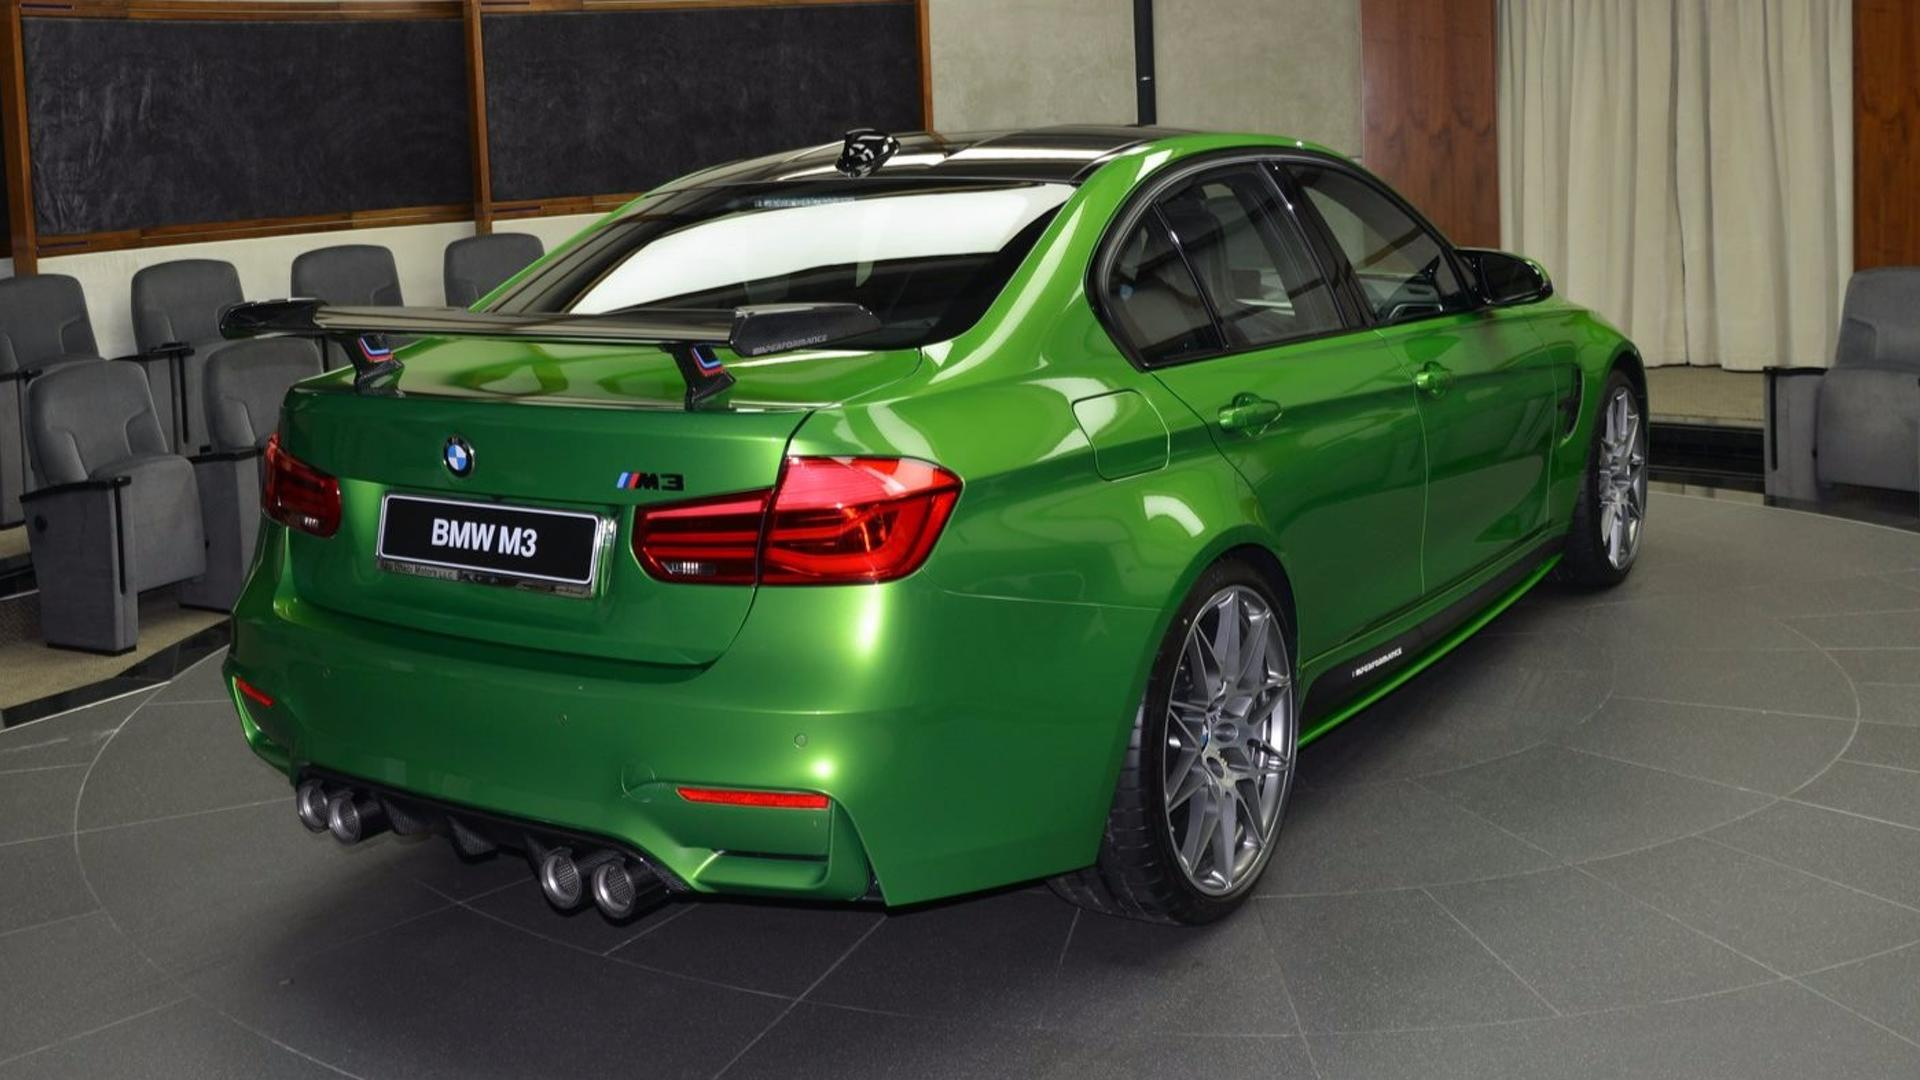 Fully Loaded BMW M3 Java Green Is The Antonym Of Subtle